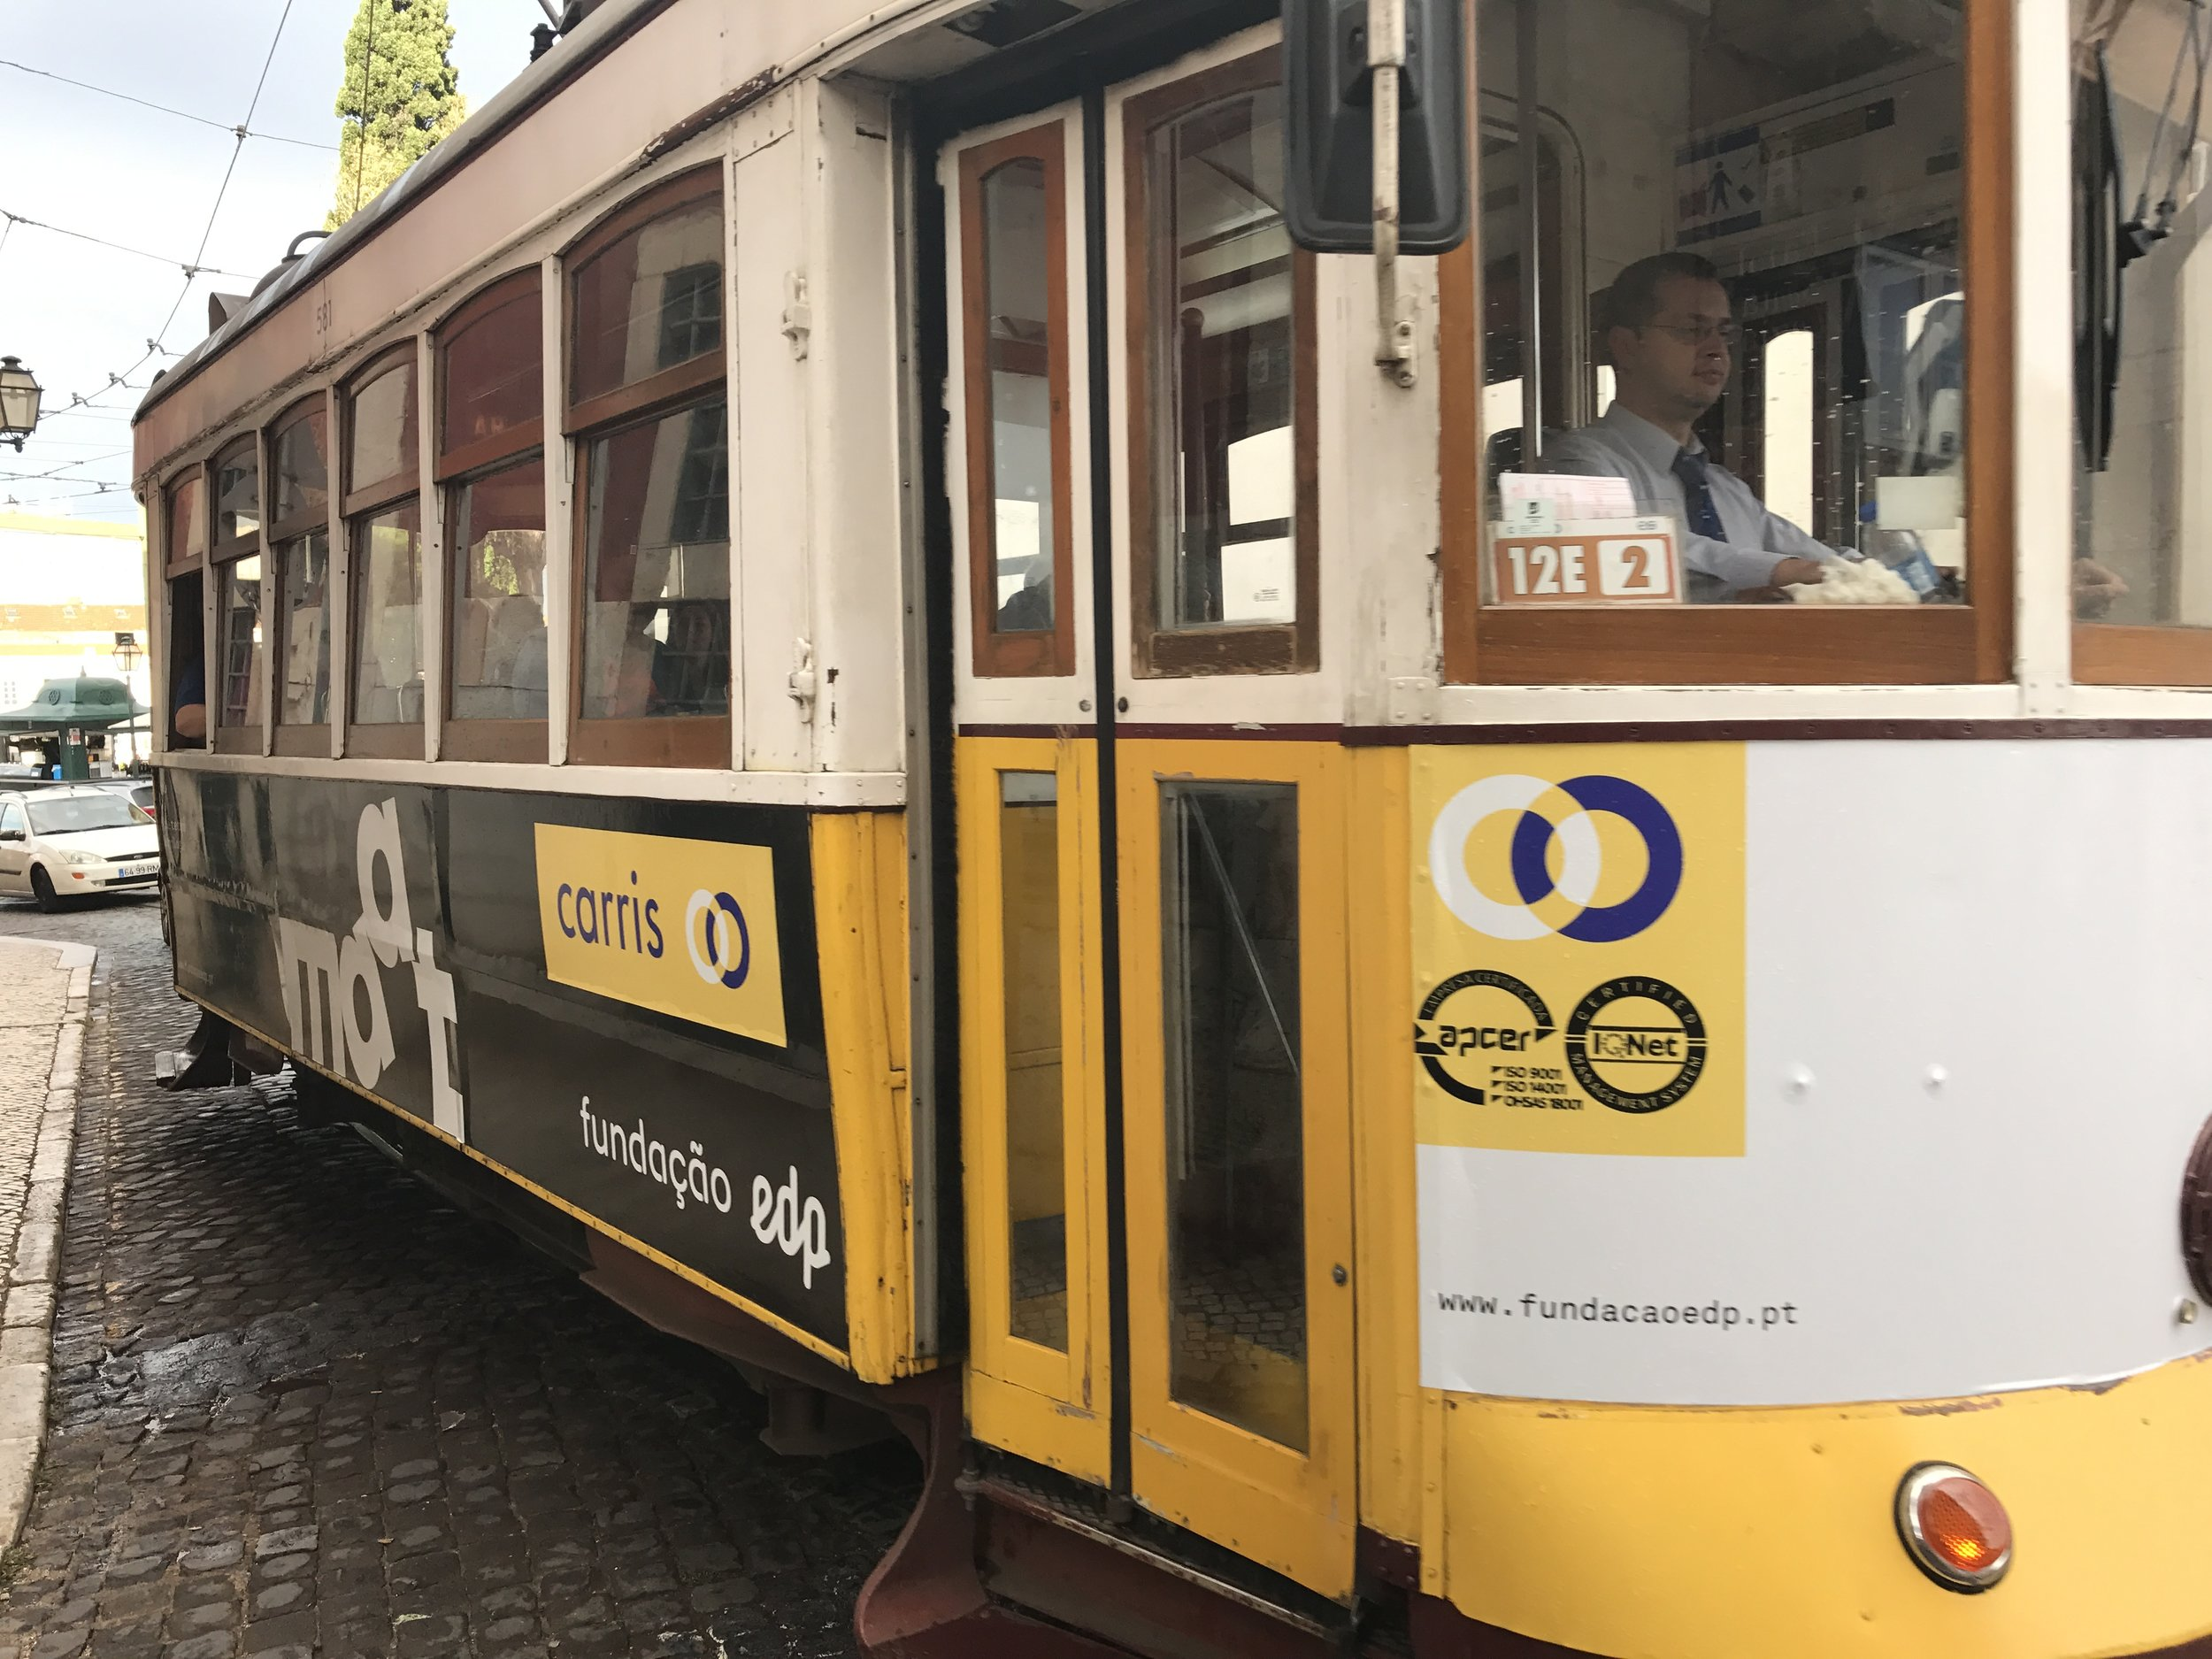 A yellow tram in Alfama District, a key part of the Lisbon culture.